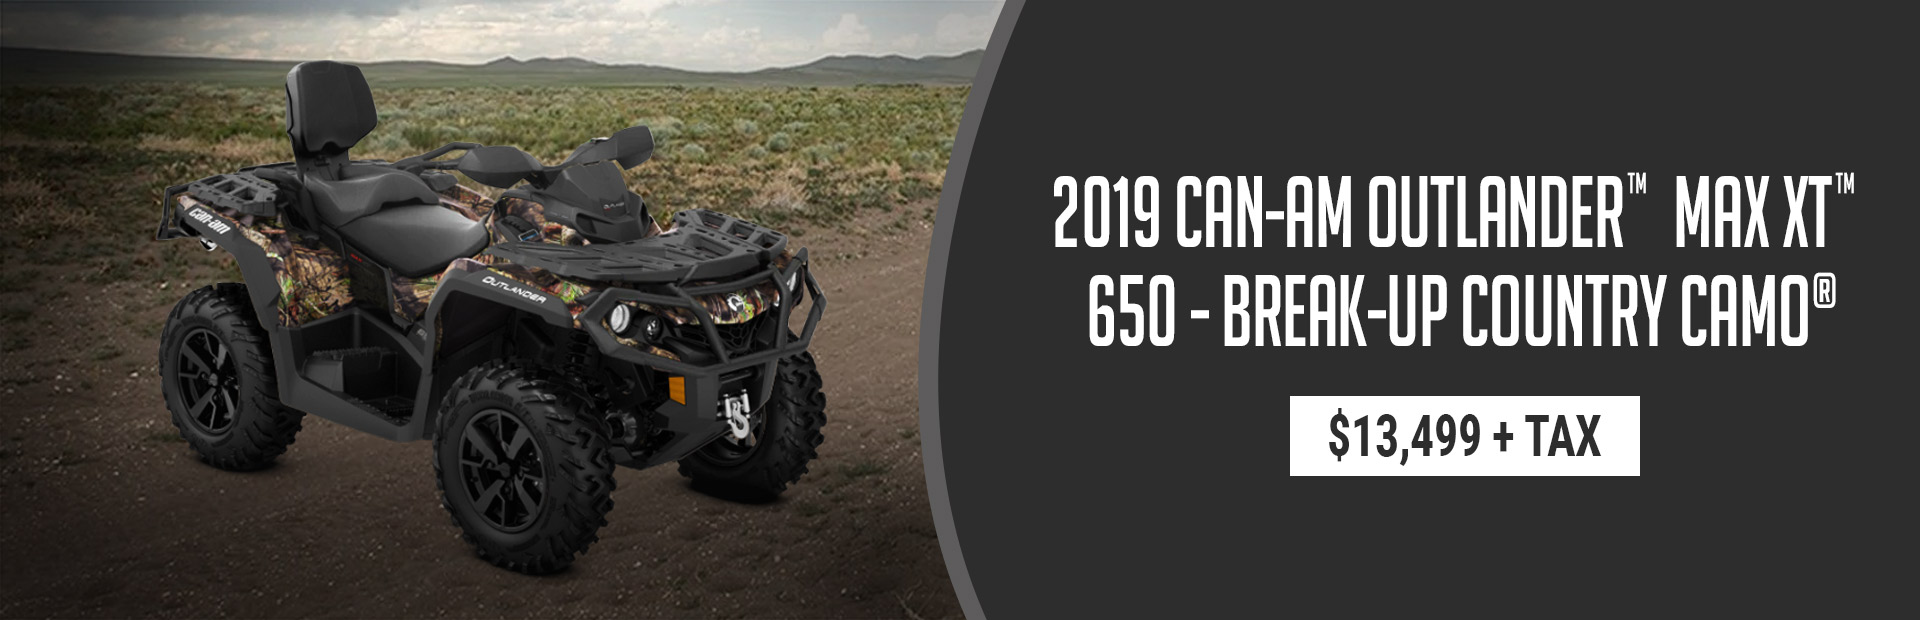 Get the 2019 Can-Am Outlander™ MAX XT™ 650 - Break-Up Country Camo® for $13,499 + tax!